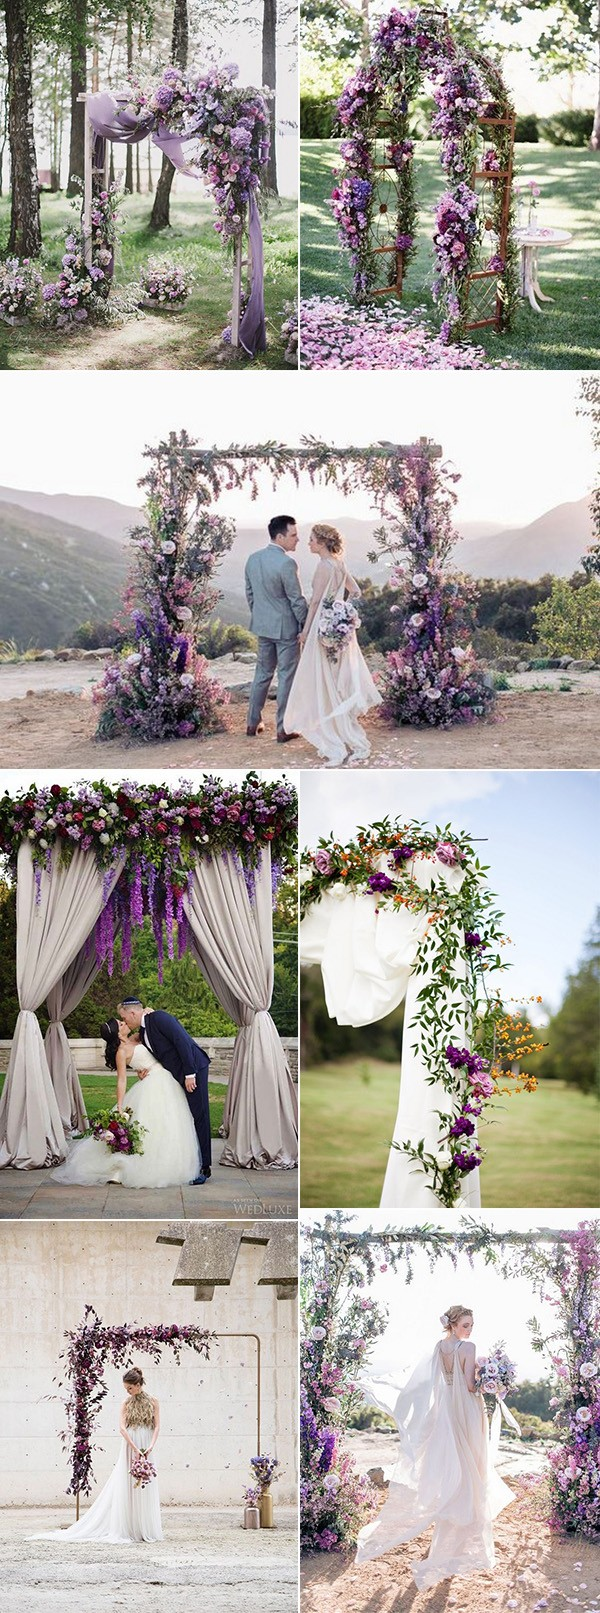 shades of purple wedding arches